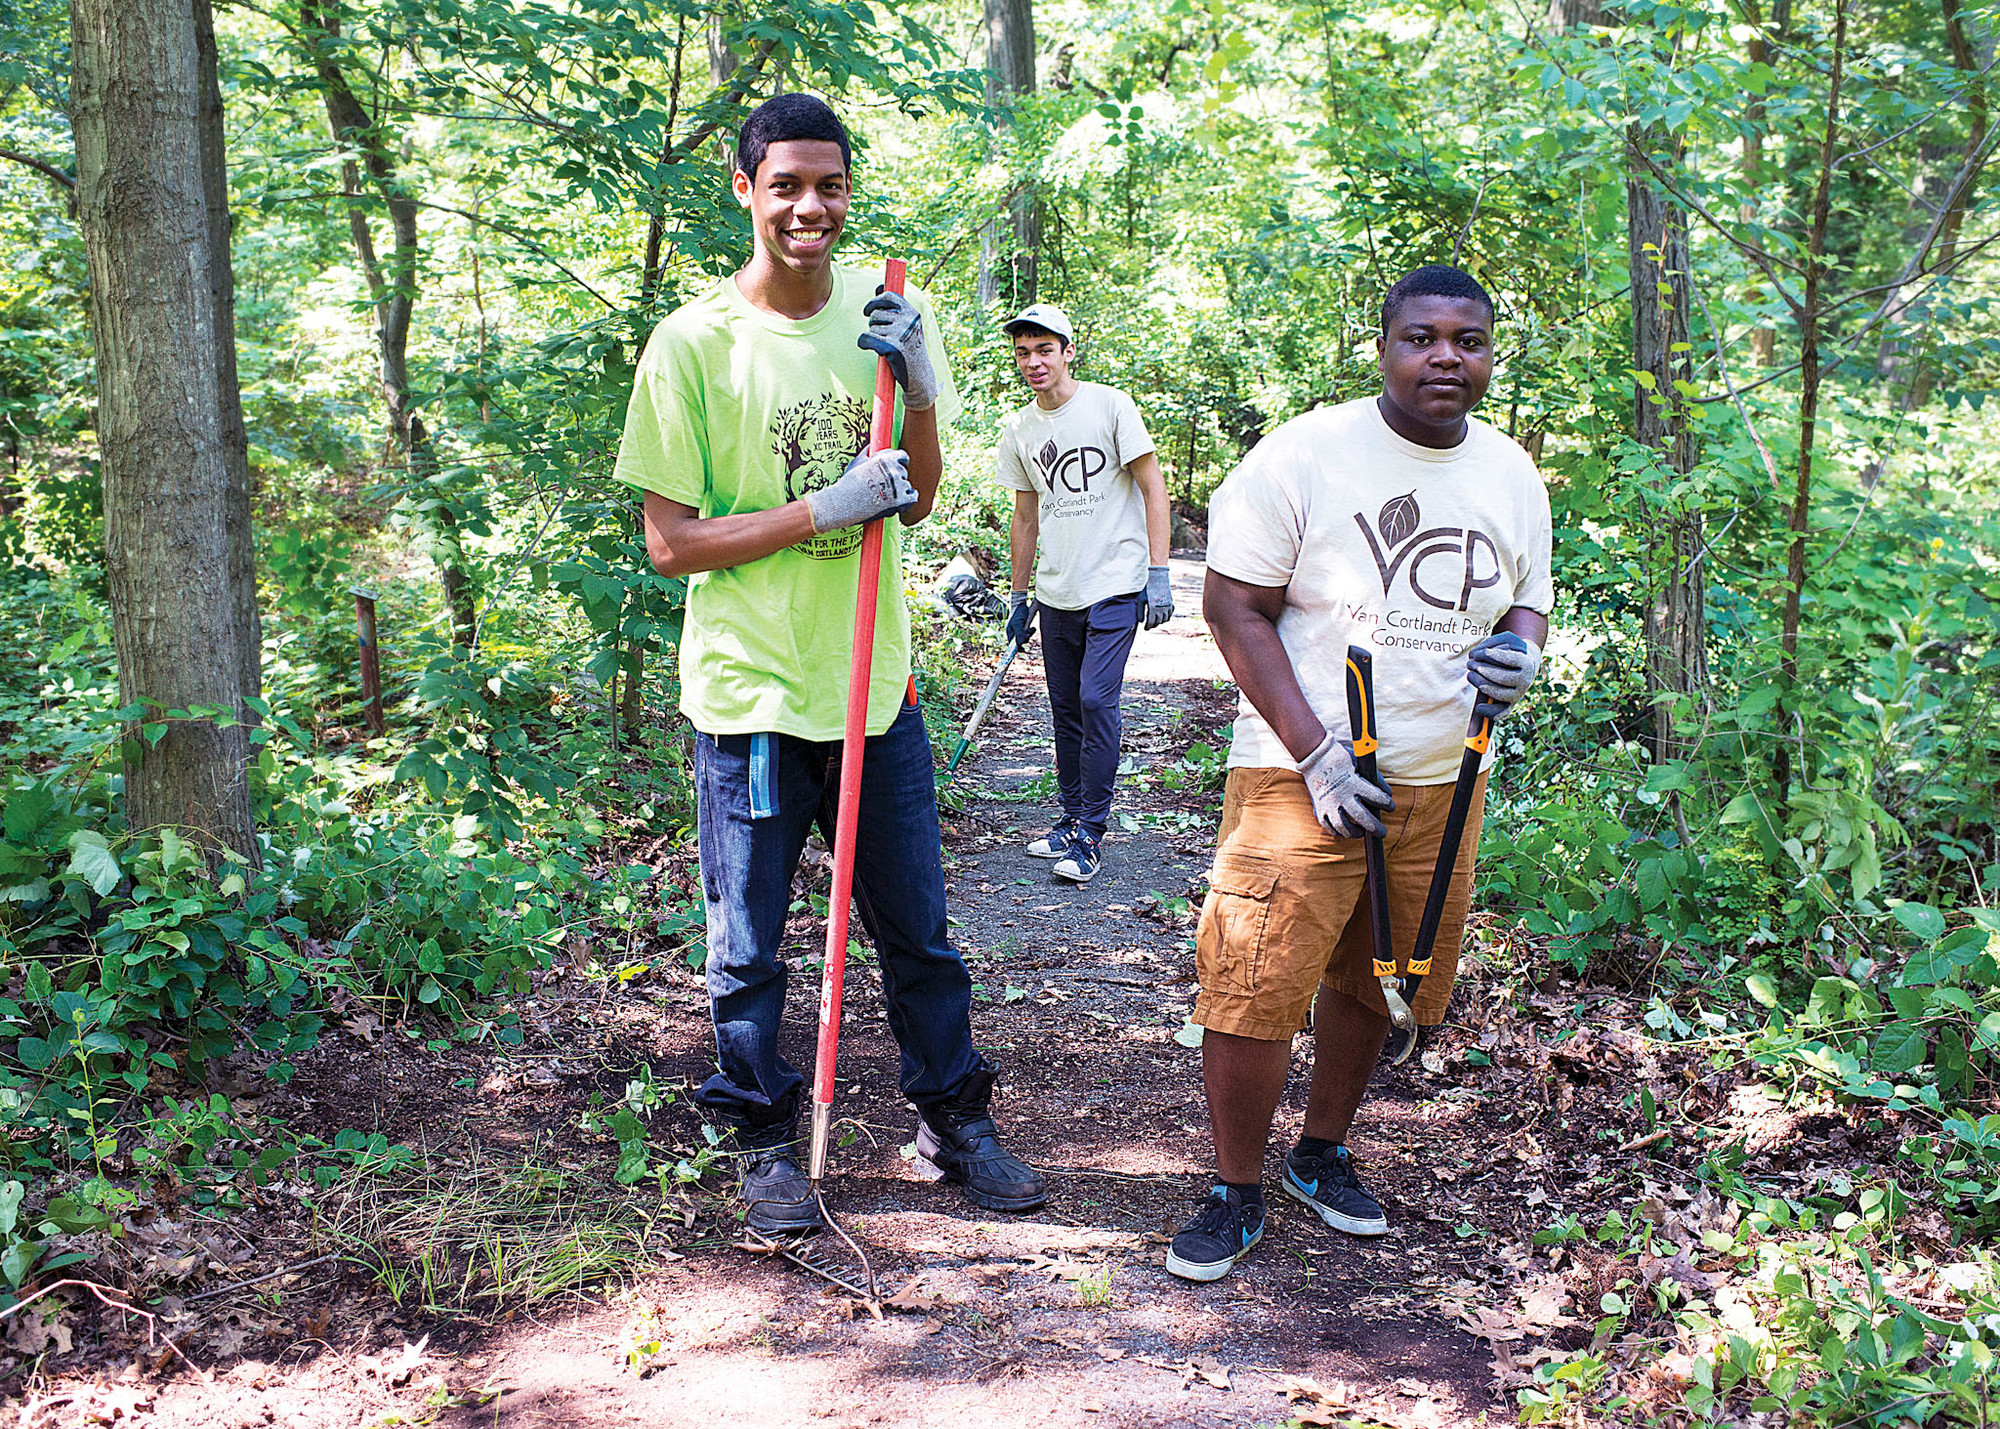 Steven Francis, Marcus Anderson, and Curtis Antiwi pose for a photo together as they clear overgrown trails in Van Cortlandt Park on July 16.